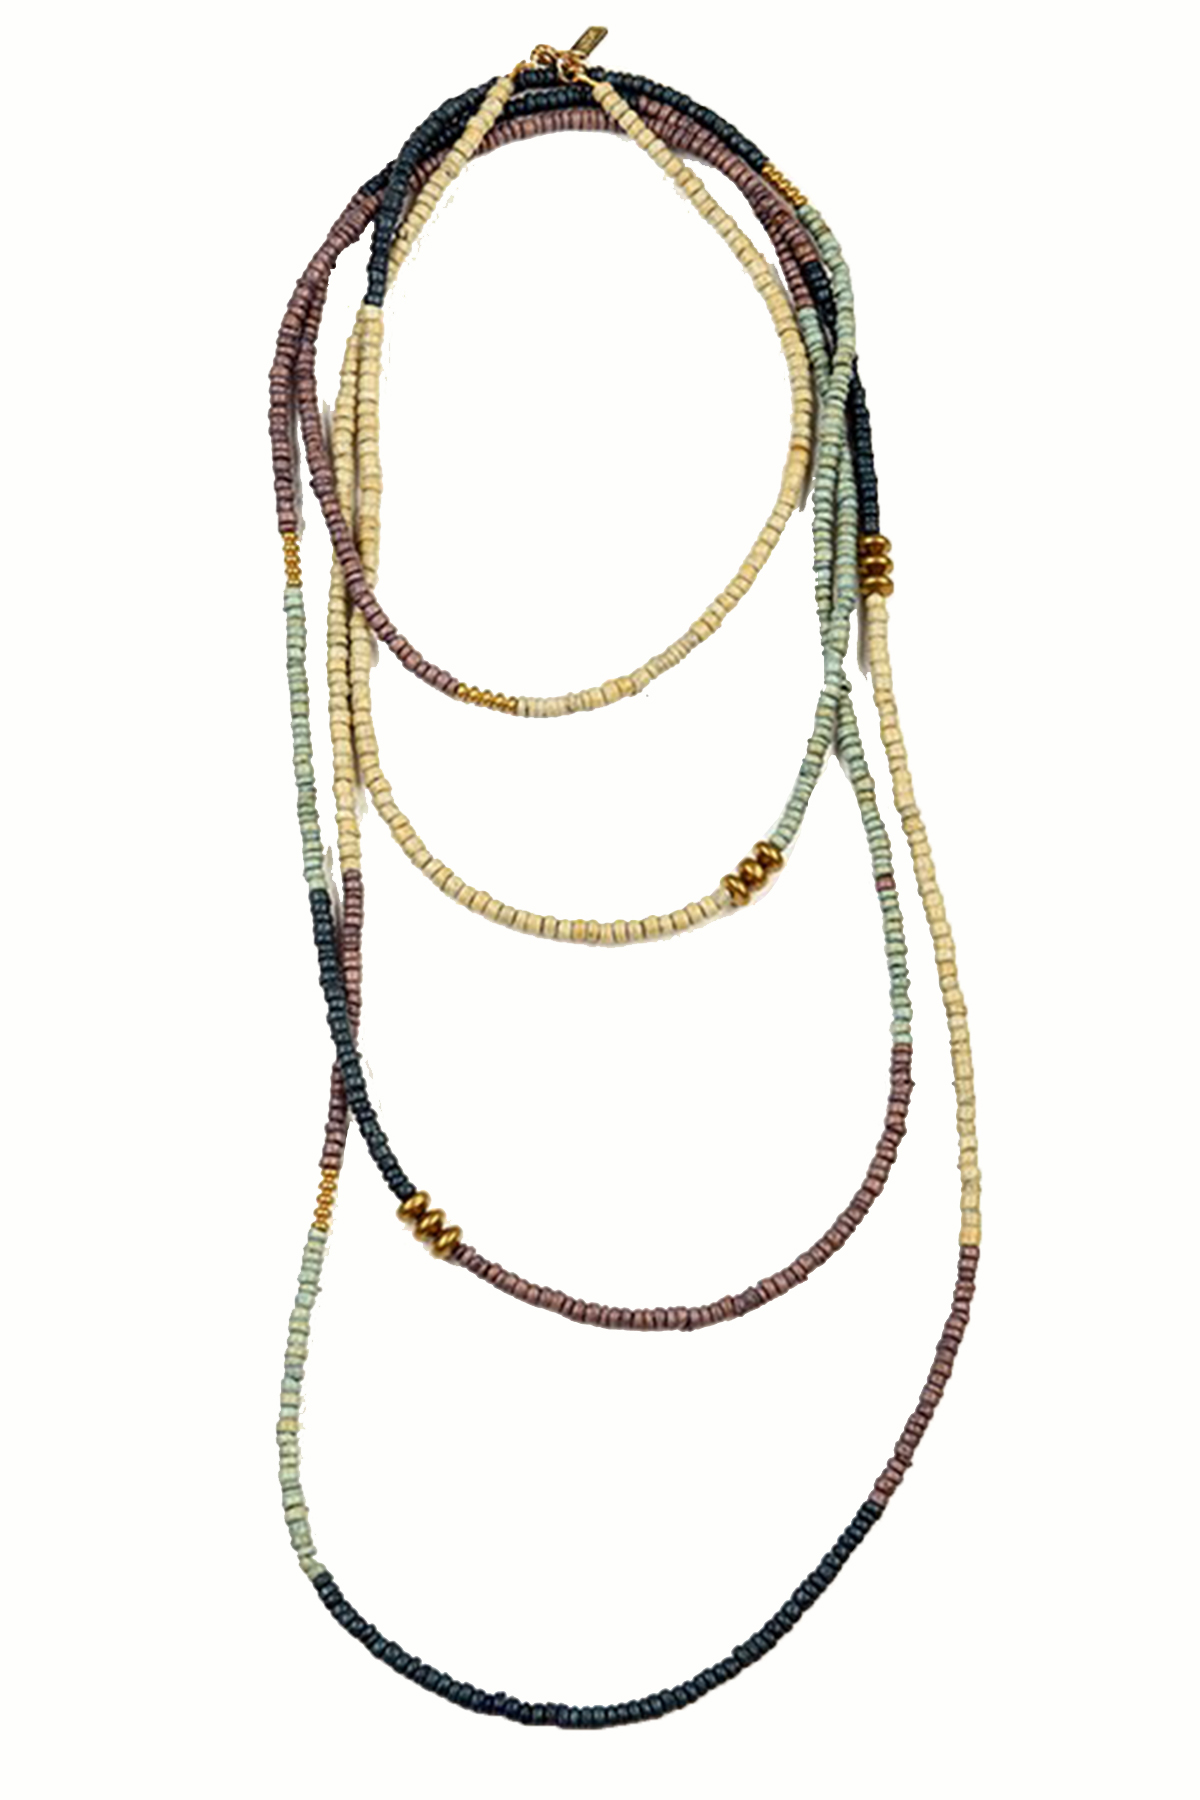 Long Beaded Coconut Shell Necklace - Teal/Sage Purple 1